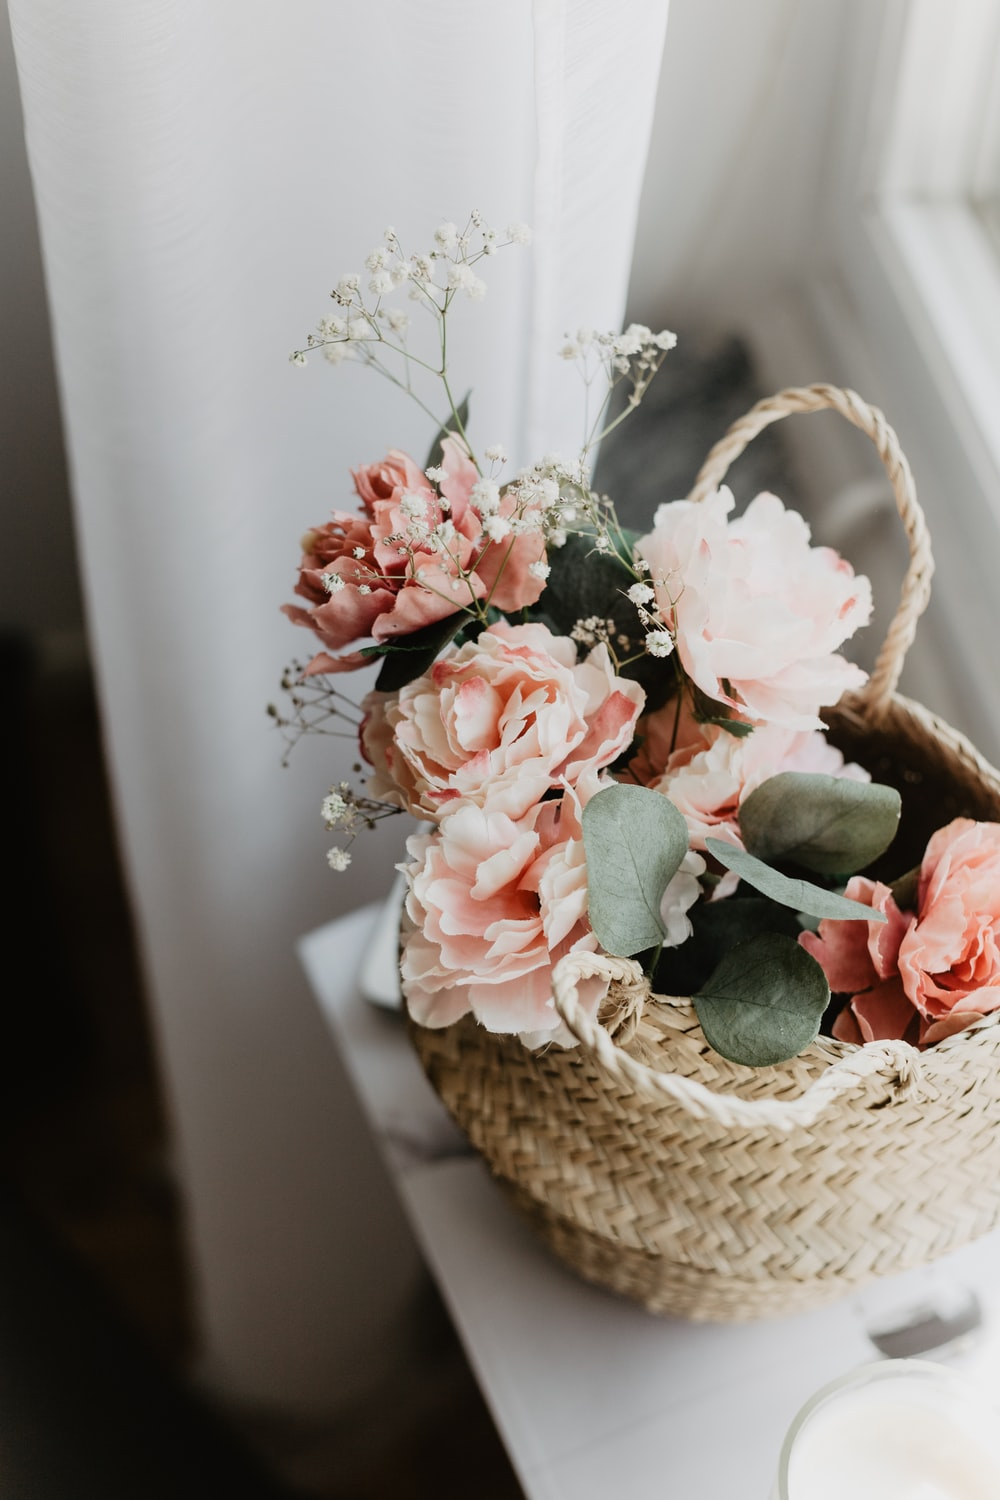 flowers centerpiece in brown wicker basket